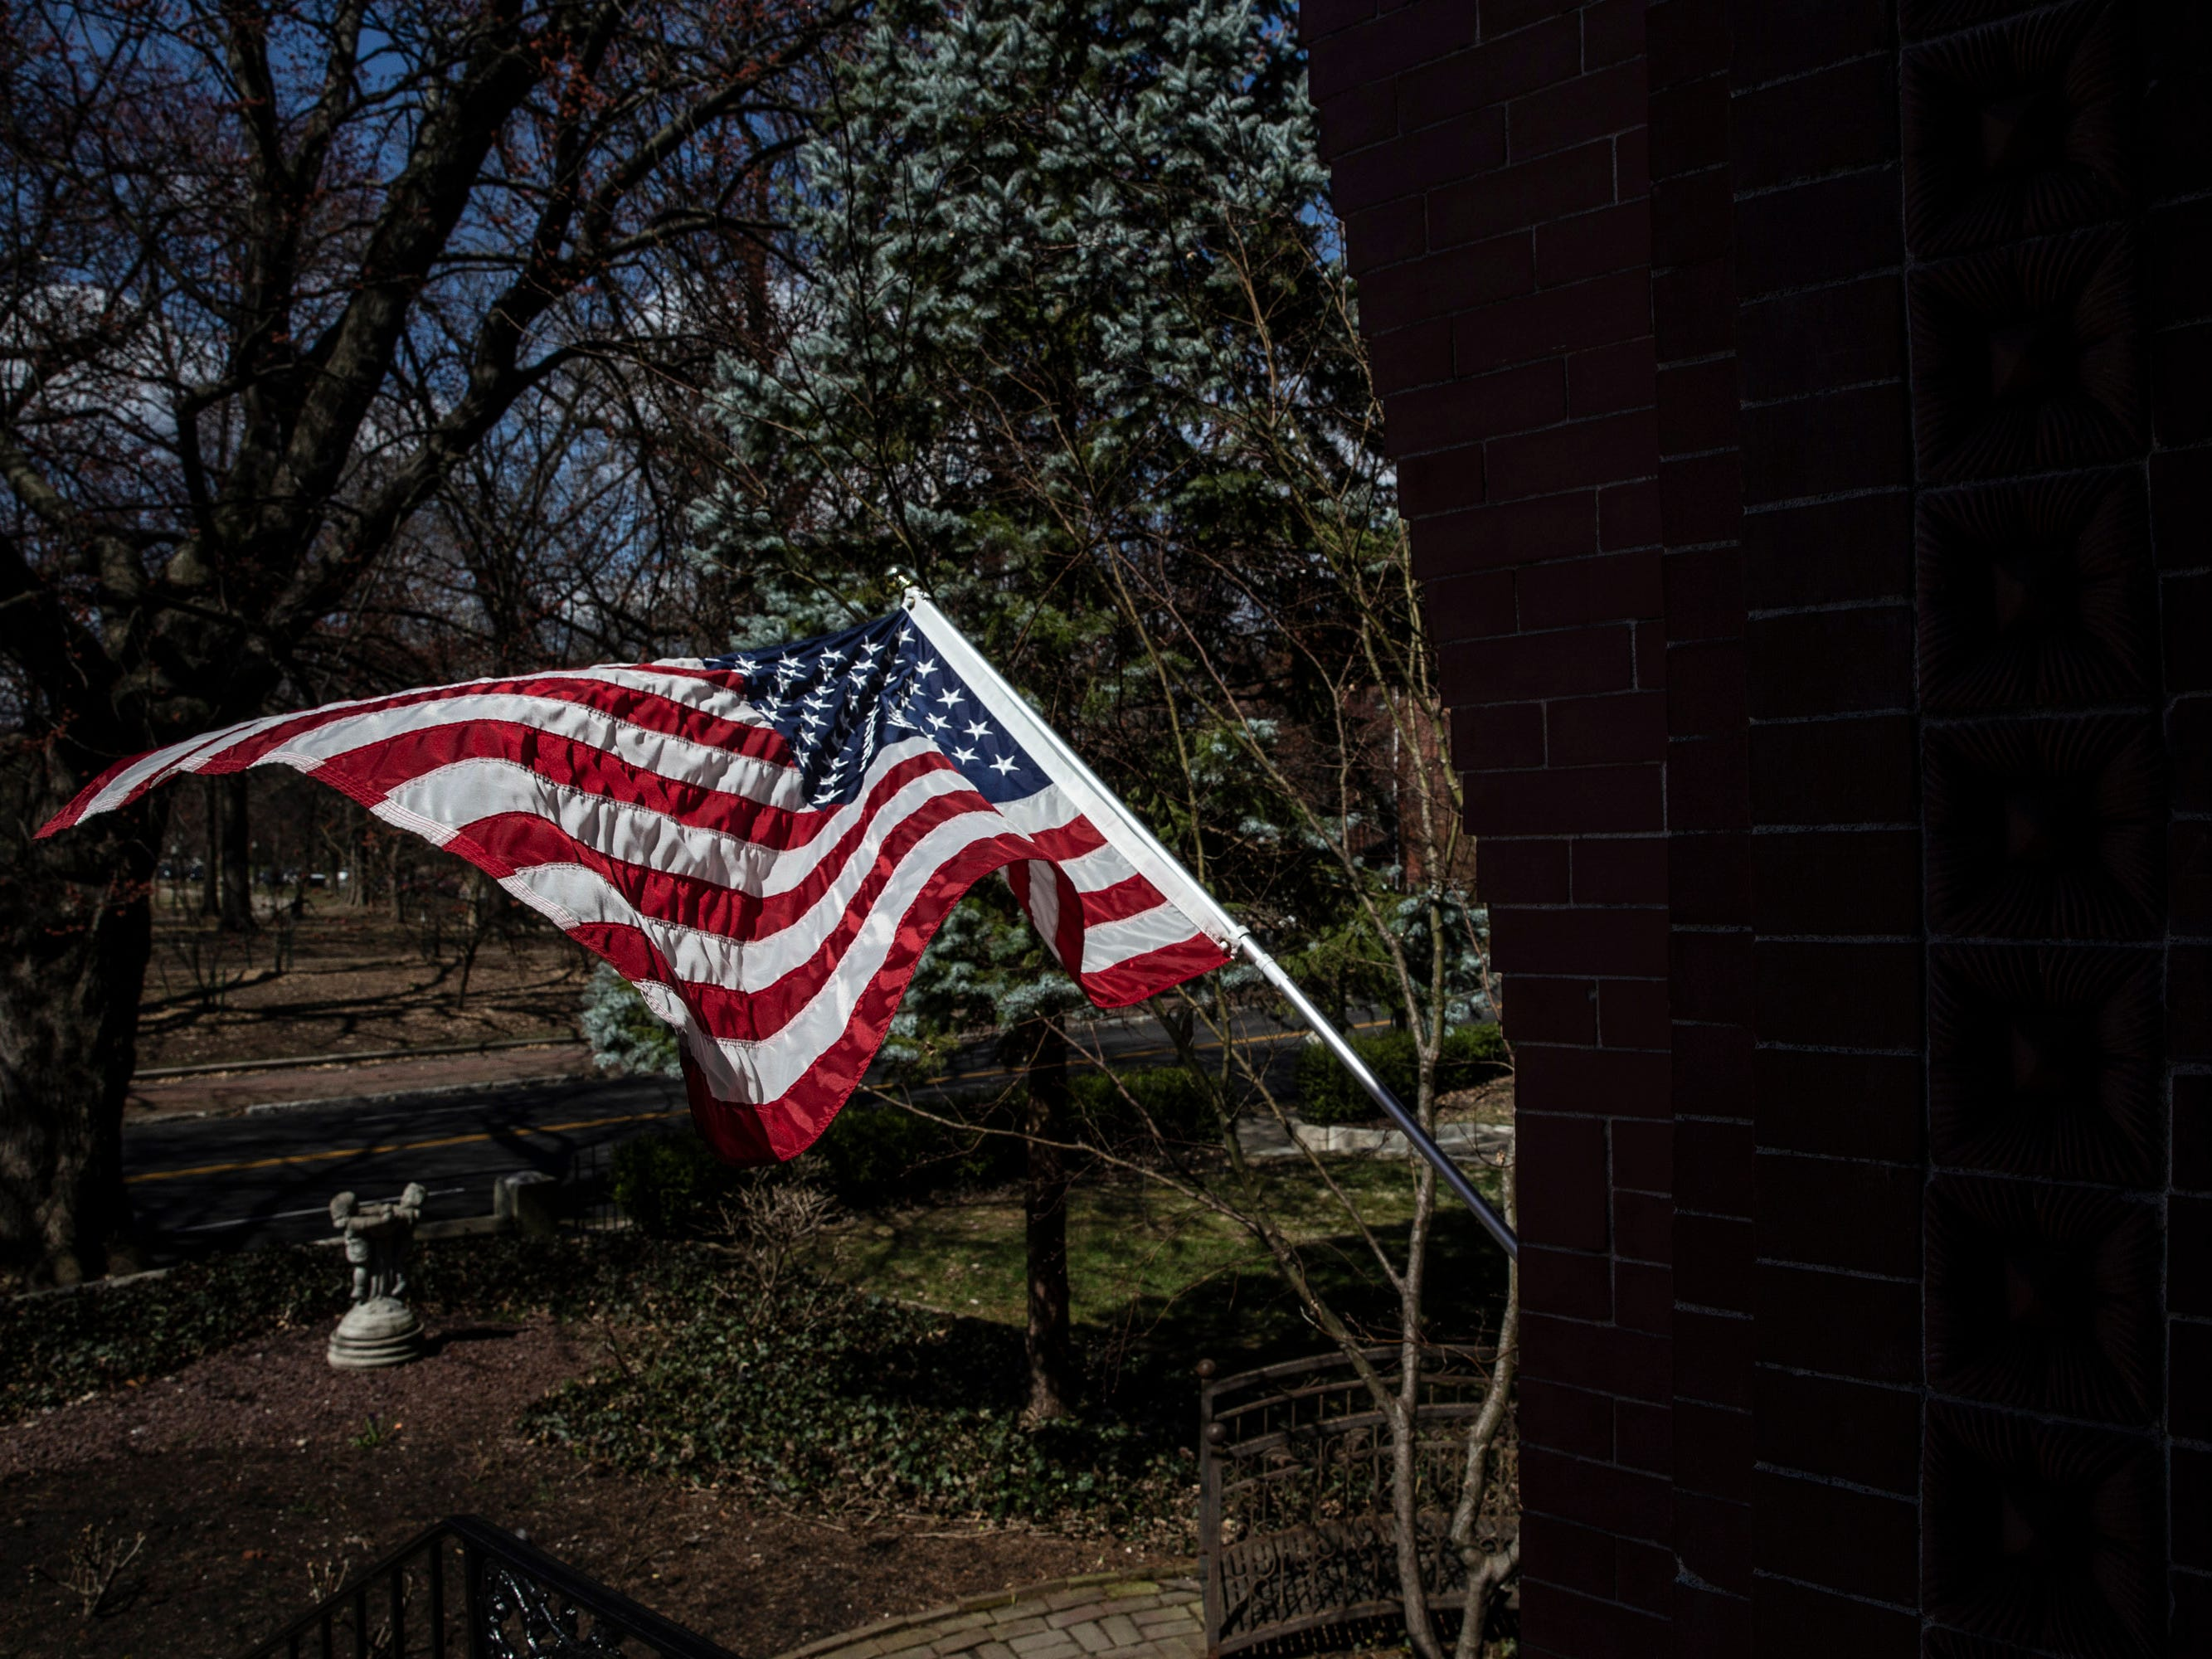 An American flag flies at the entrance of Hank and Ann Triplett's home. March 18, 2019.